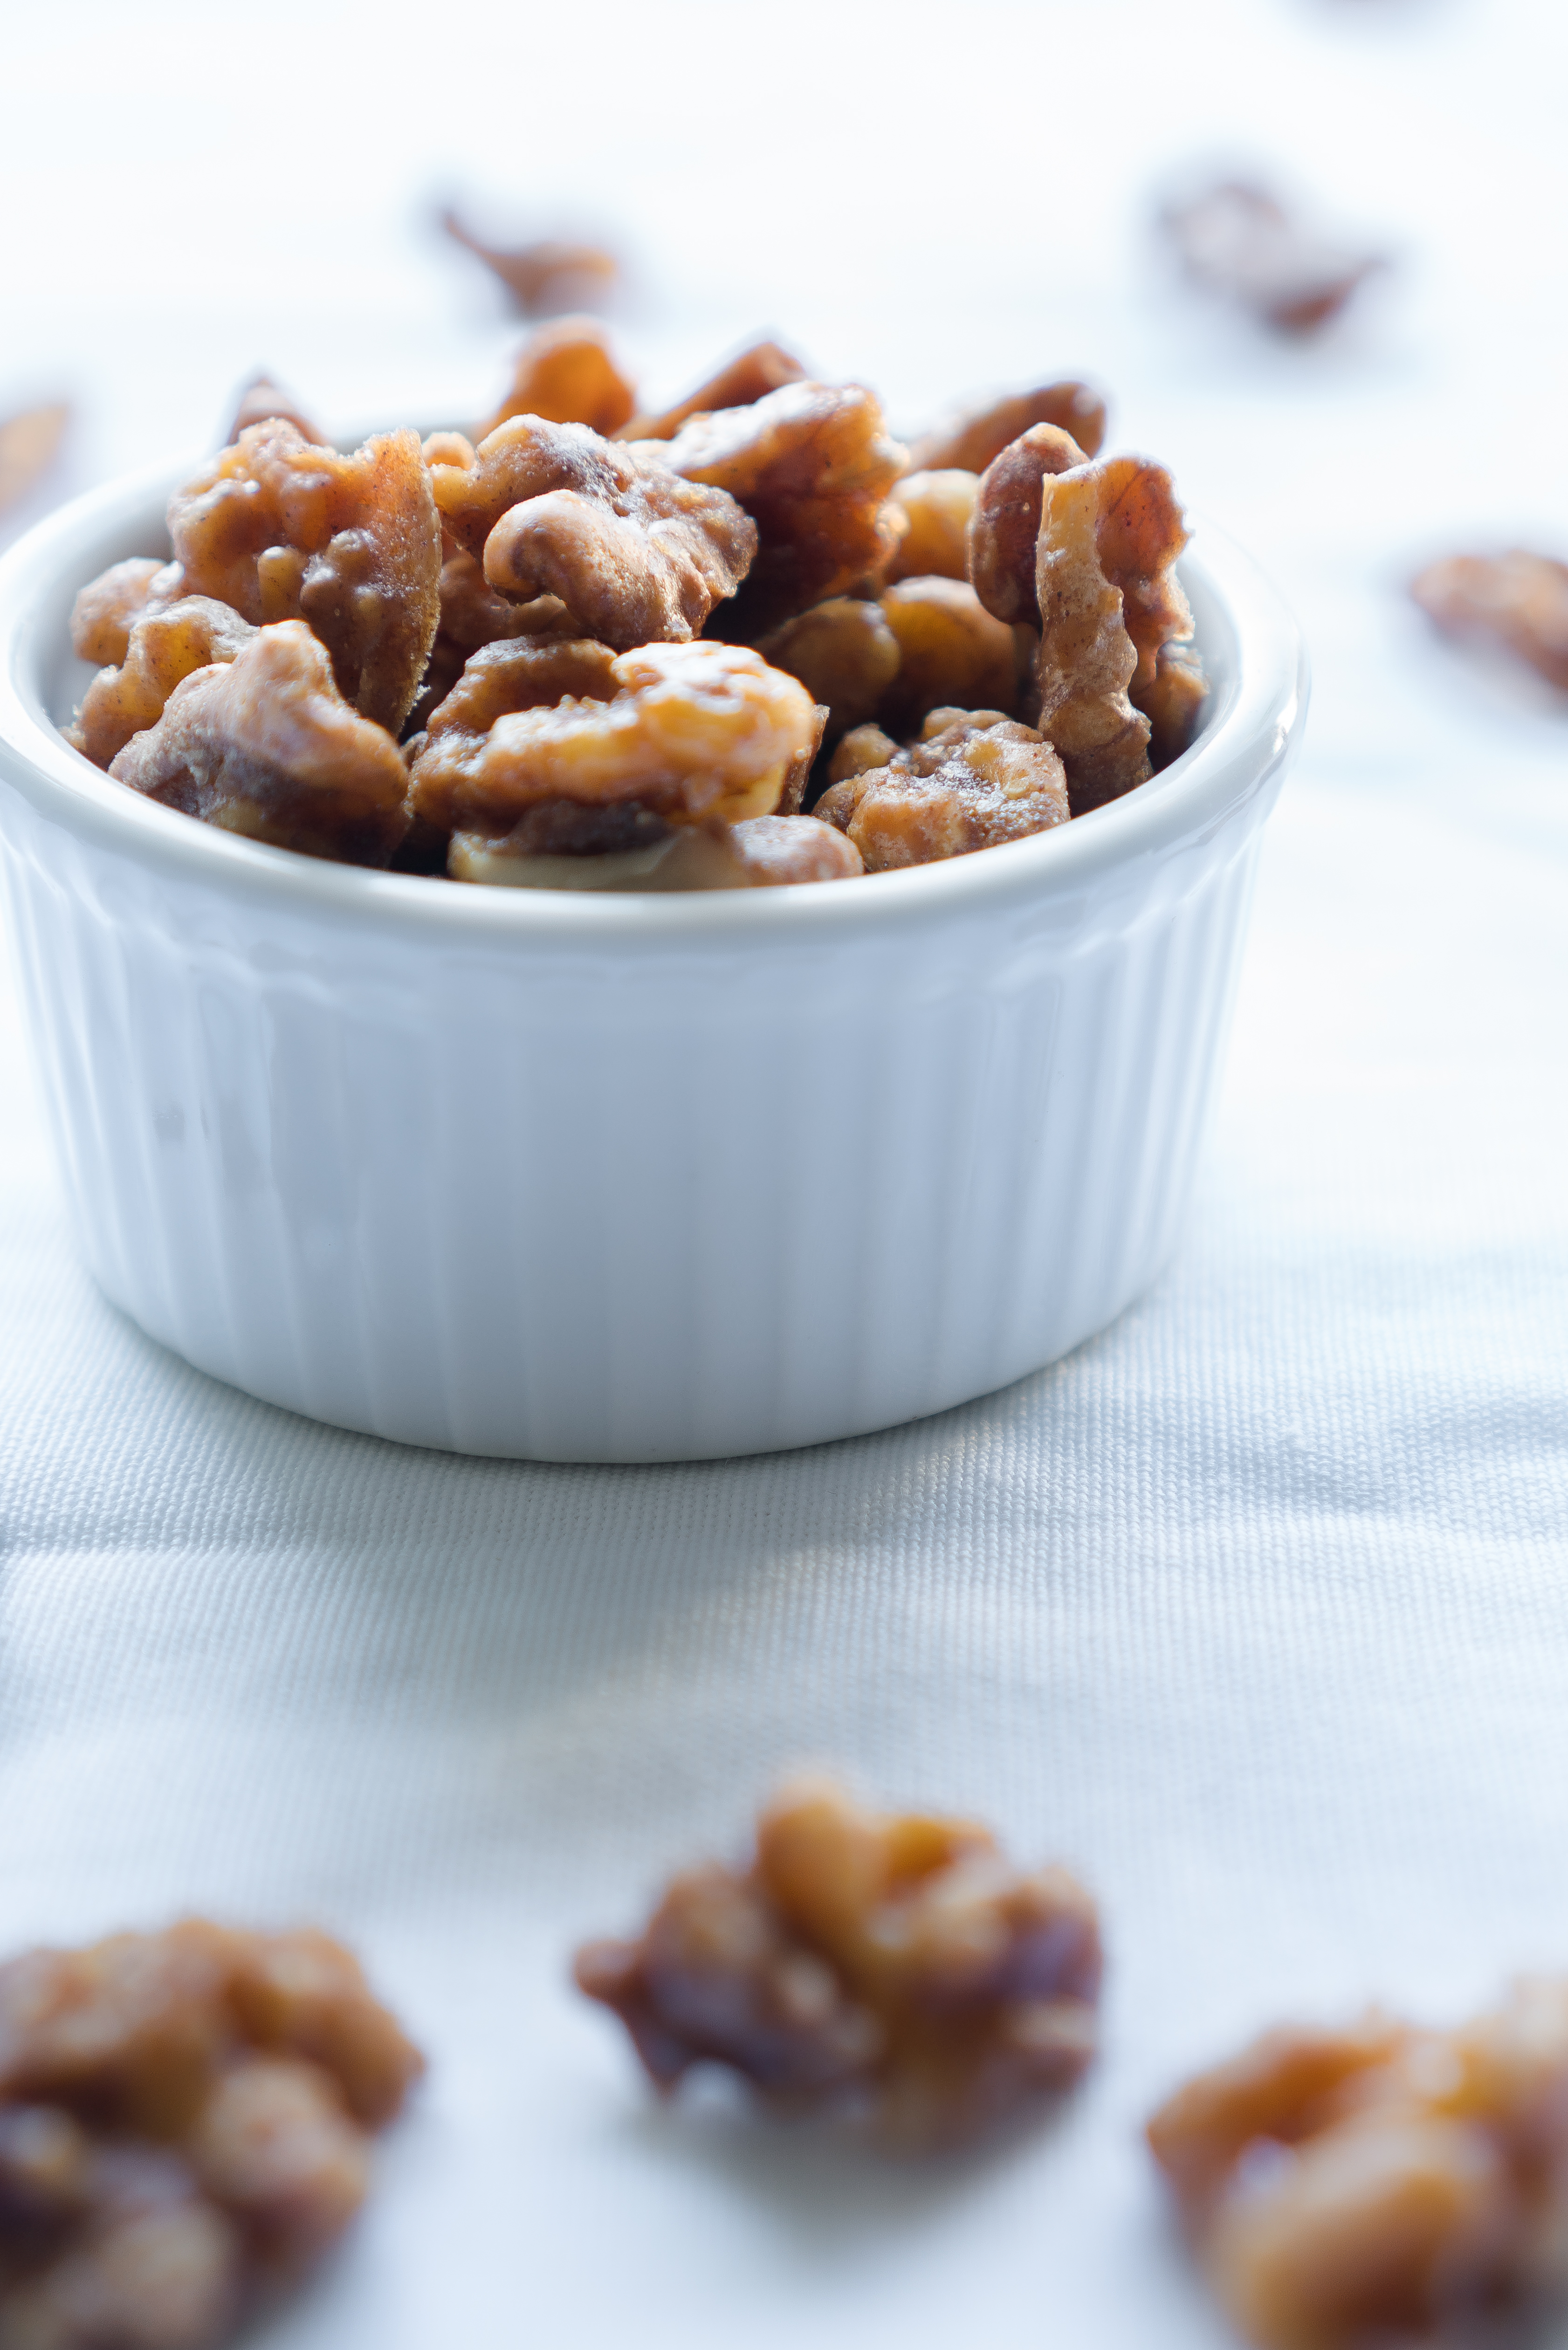 Maple Glazed Walnuts – Easy 5-min recipe for Maple Glazed Walnuts! Naturally sweetened with no added oil using just walnuts, maple syrup, cinnamon, salt, and cayenne. Enjoy as a topping for salads, yogurt parfaits, or as a snack all on their own! ♥   freeyourfork.com